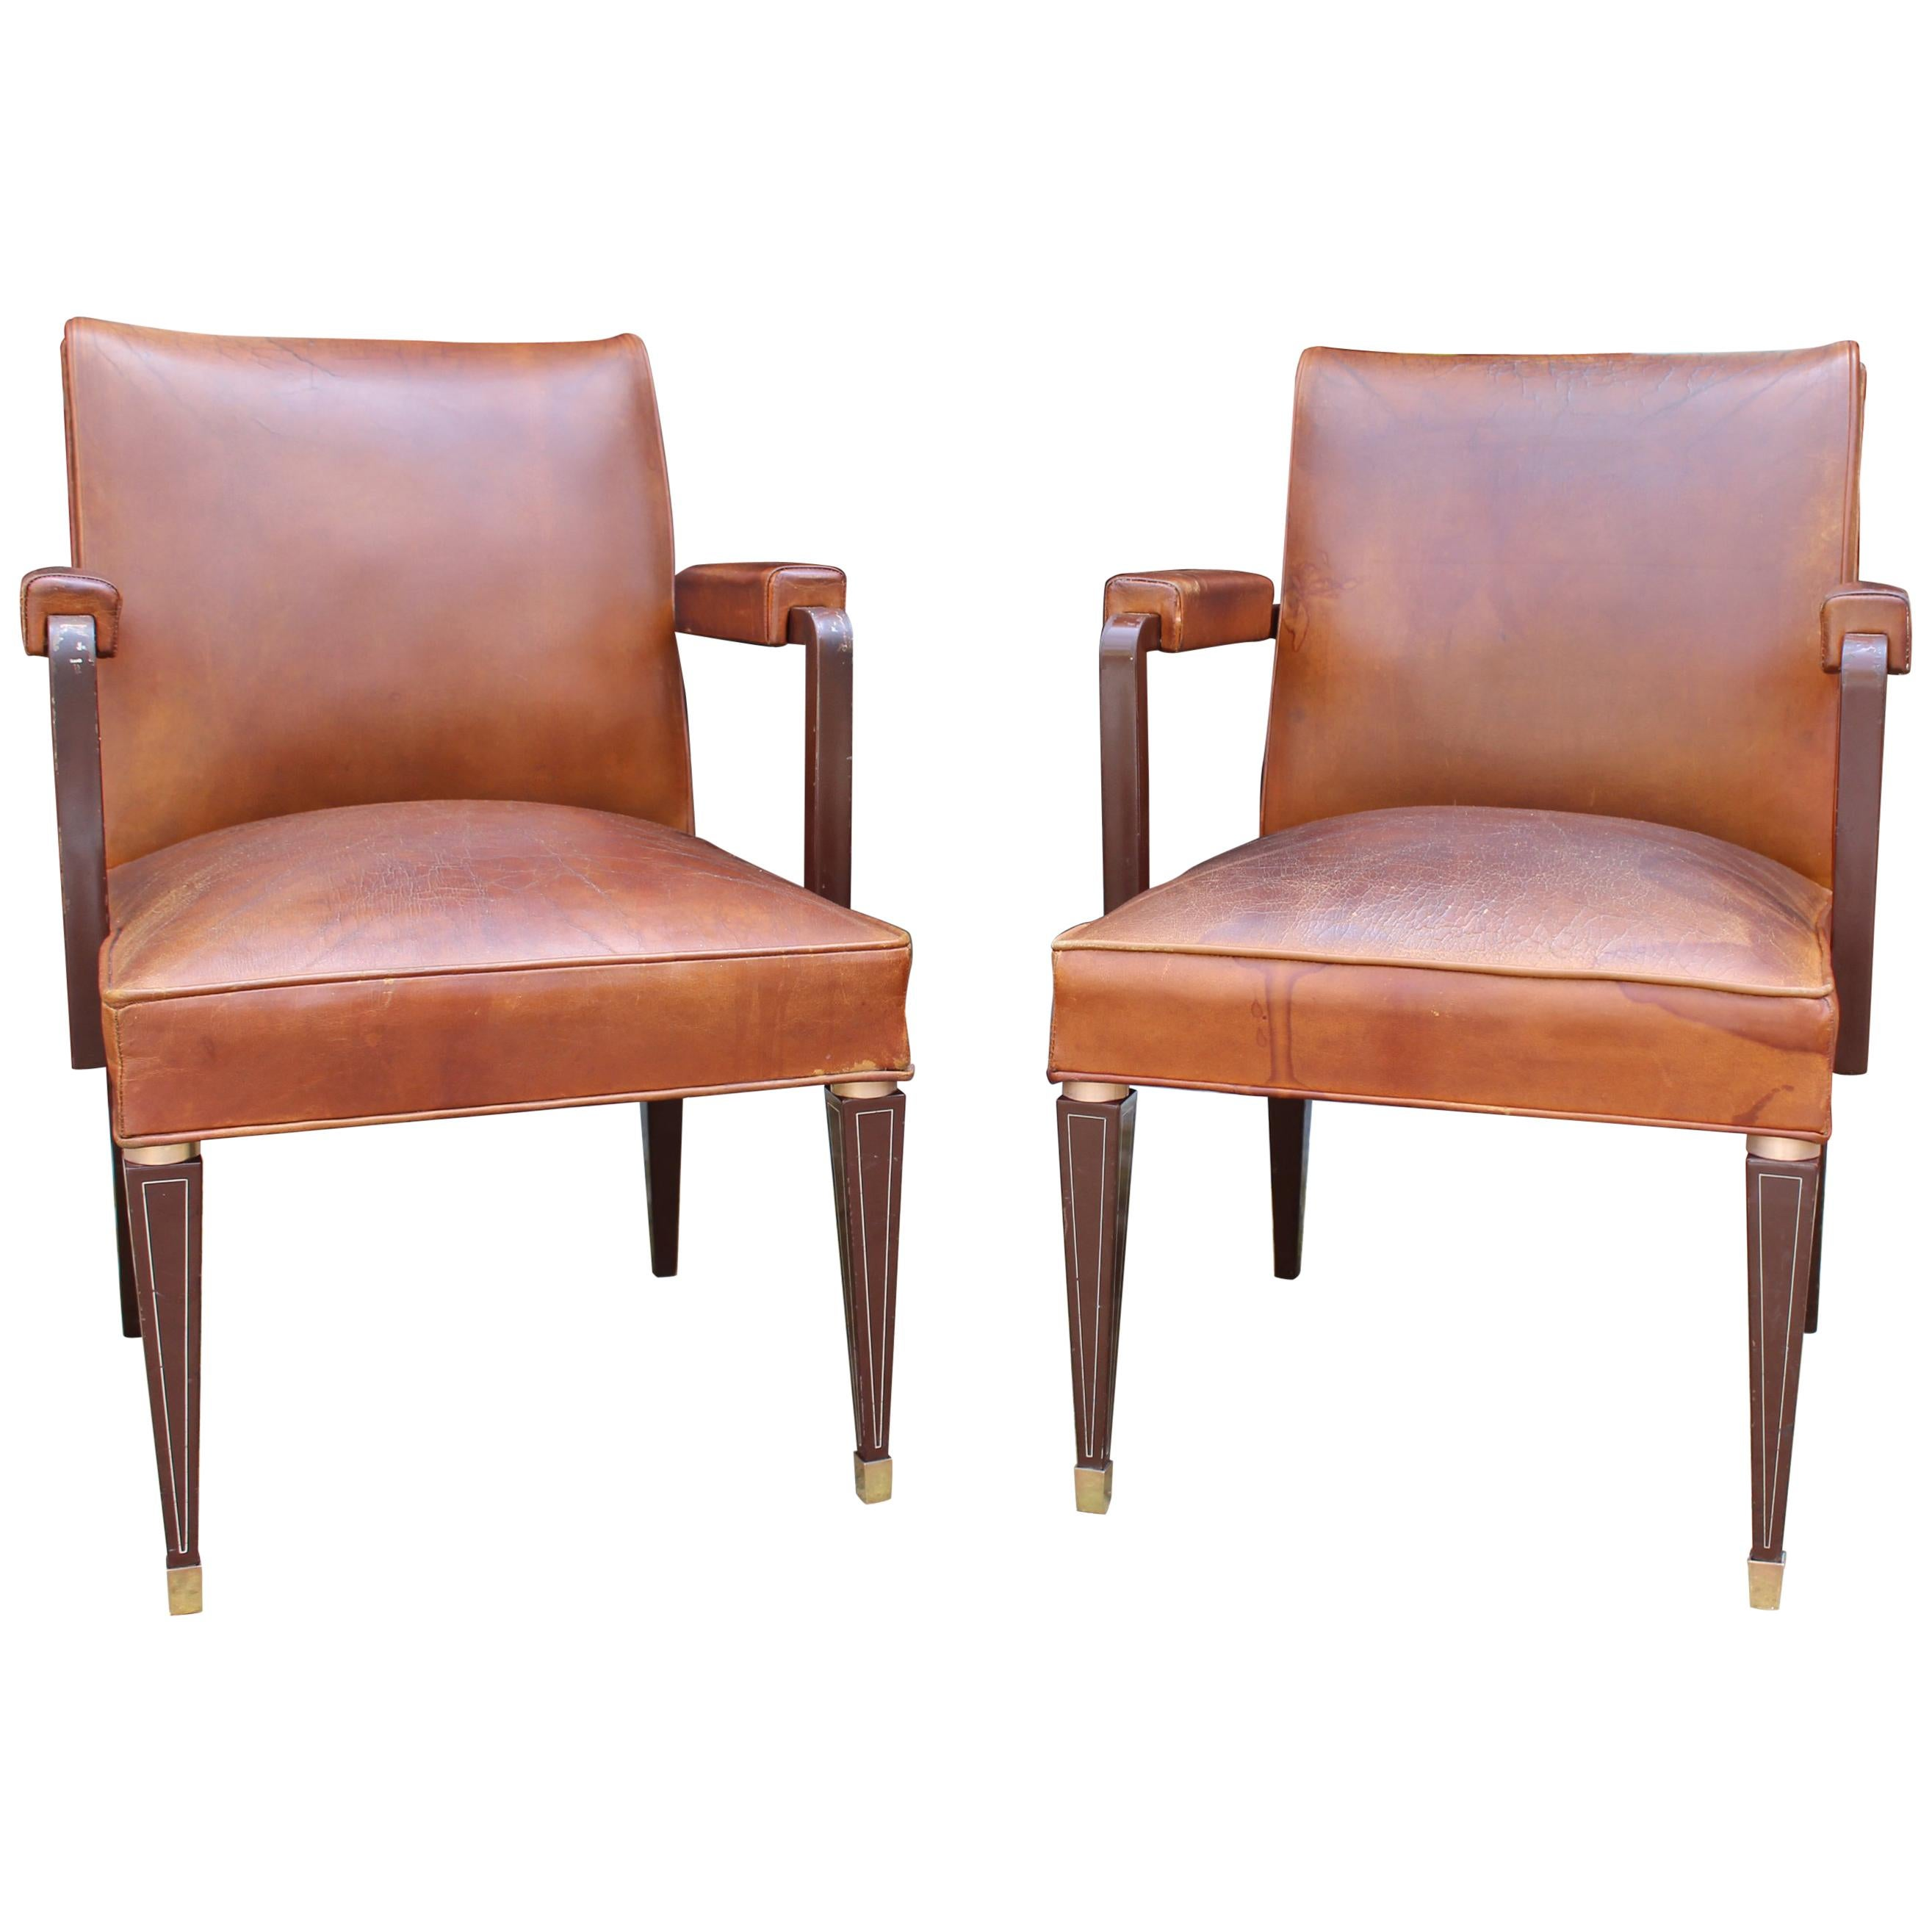 1950s Pair of Spanish Brown Leather and Brass Fittings Classical Armchairs